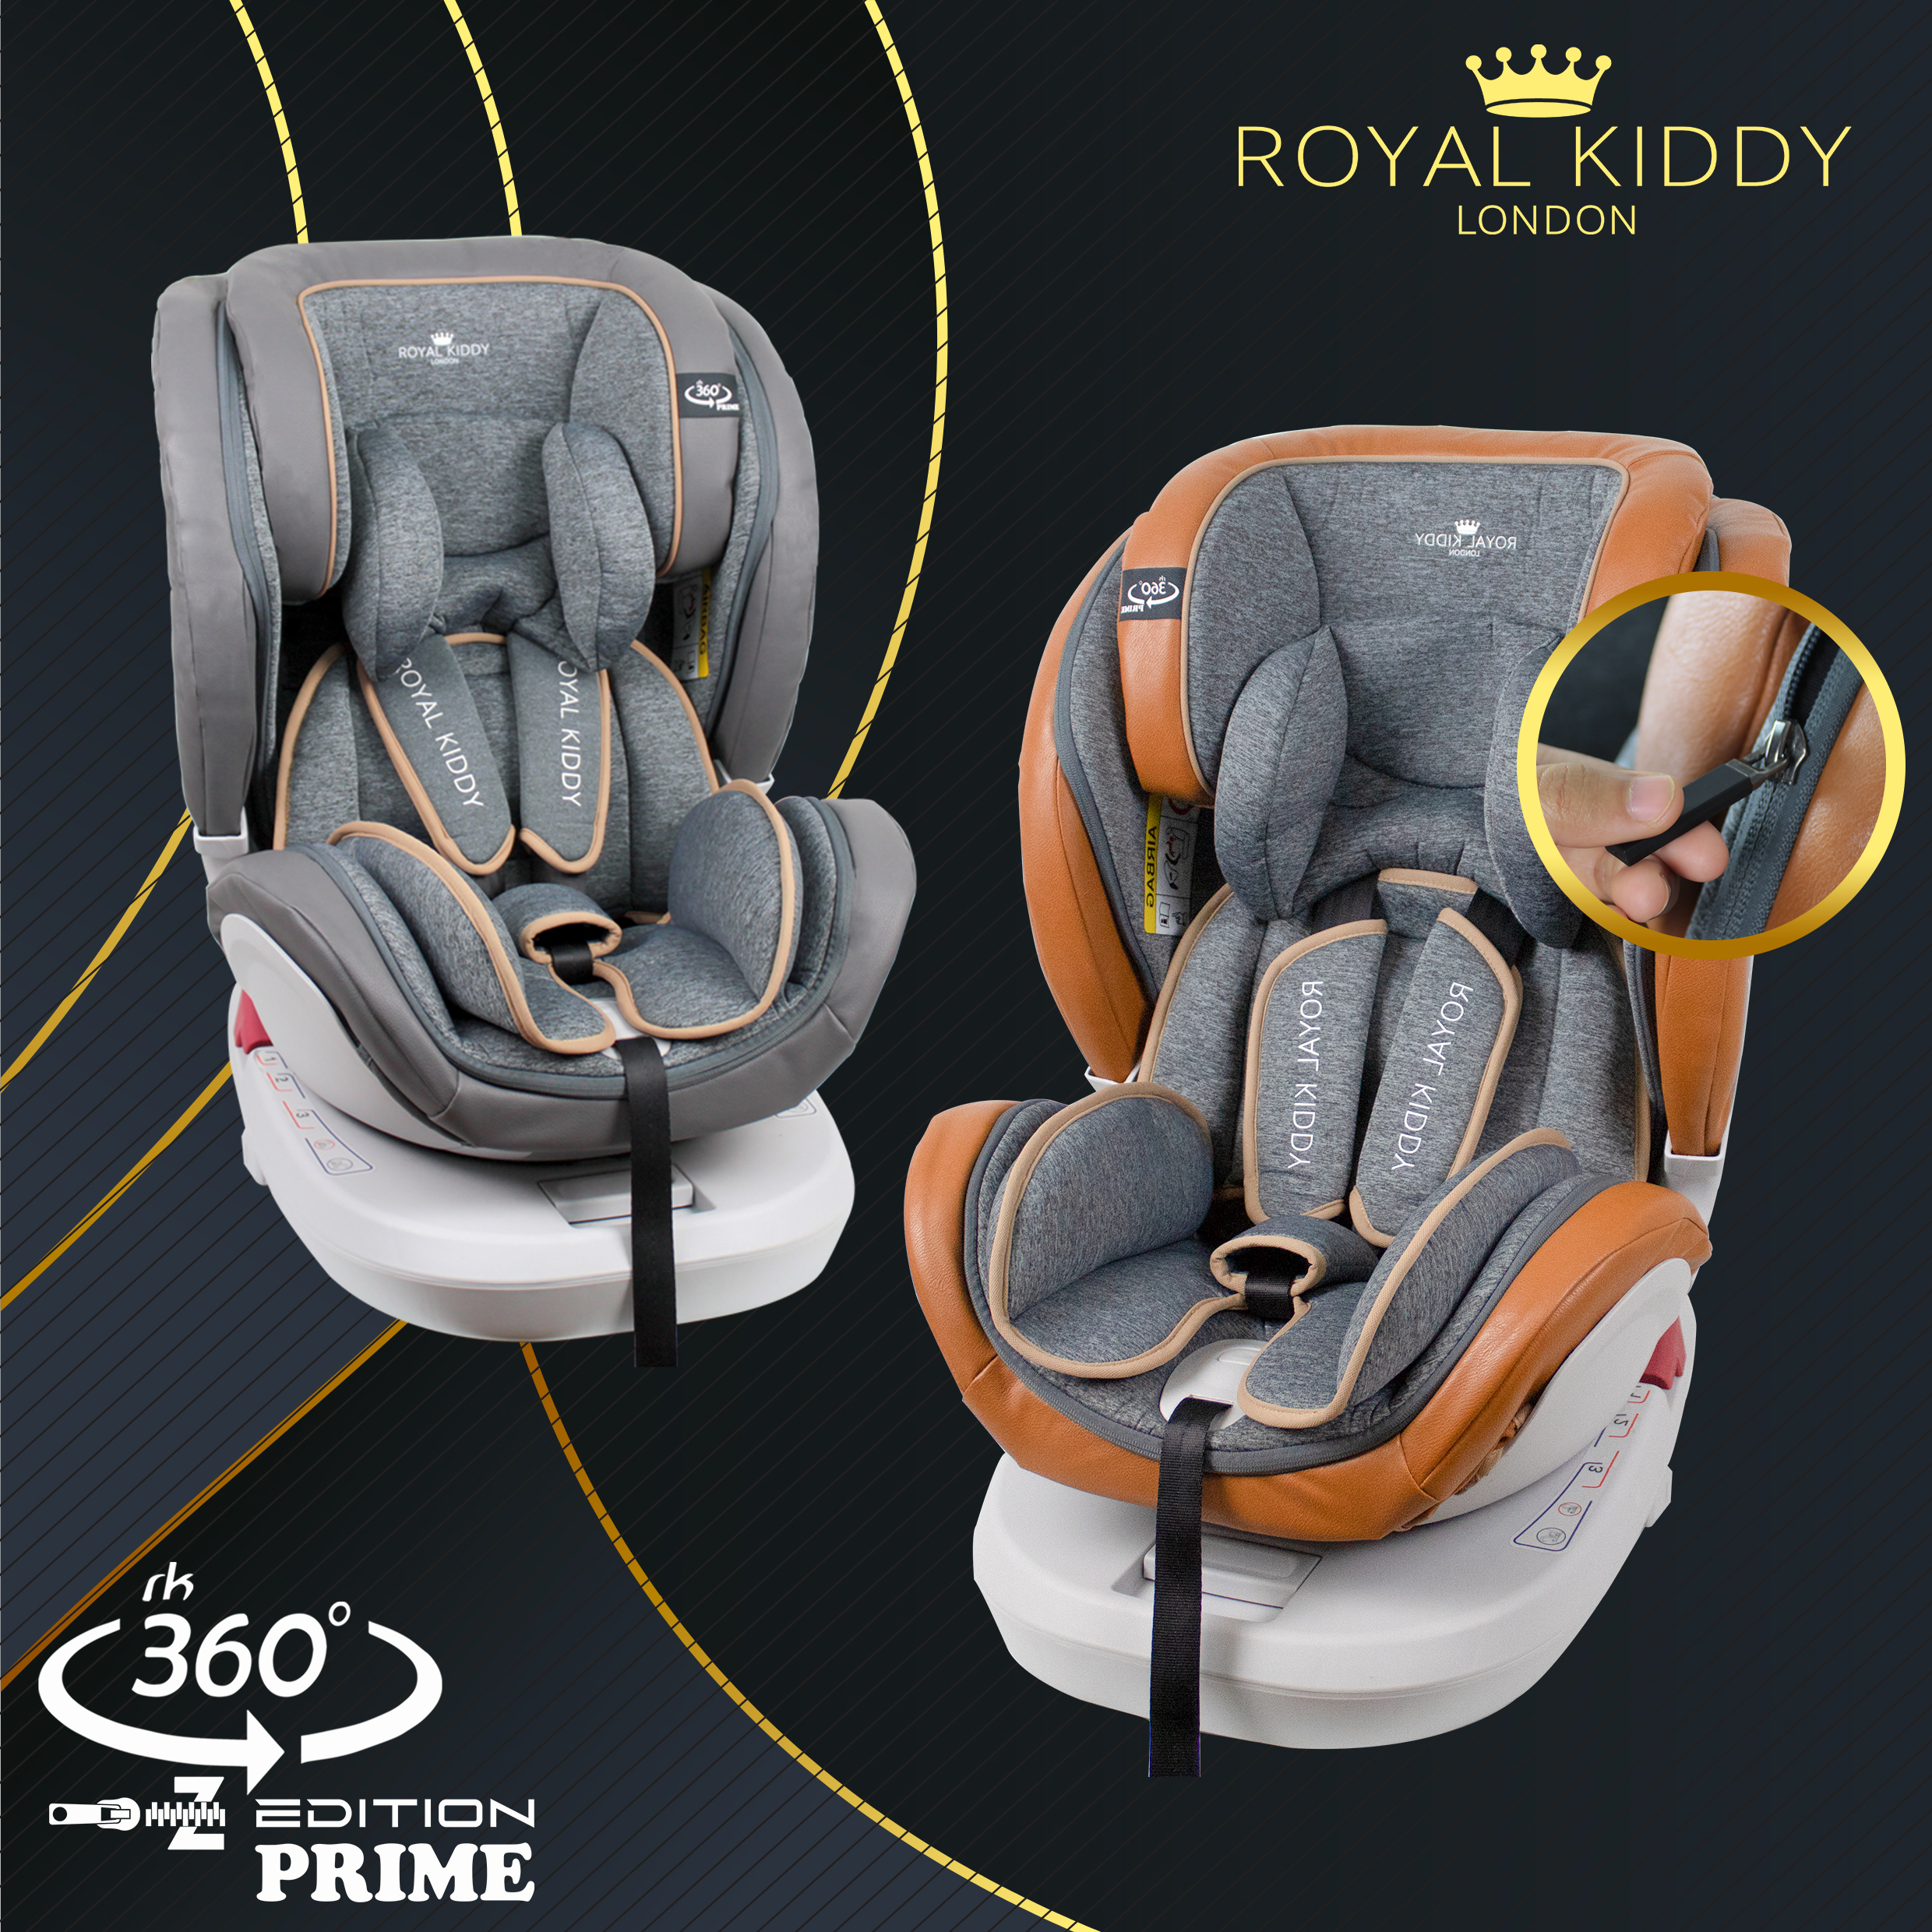 (NEW PRODUCT) RK 360 PRIME Z EDITION Carseat